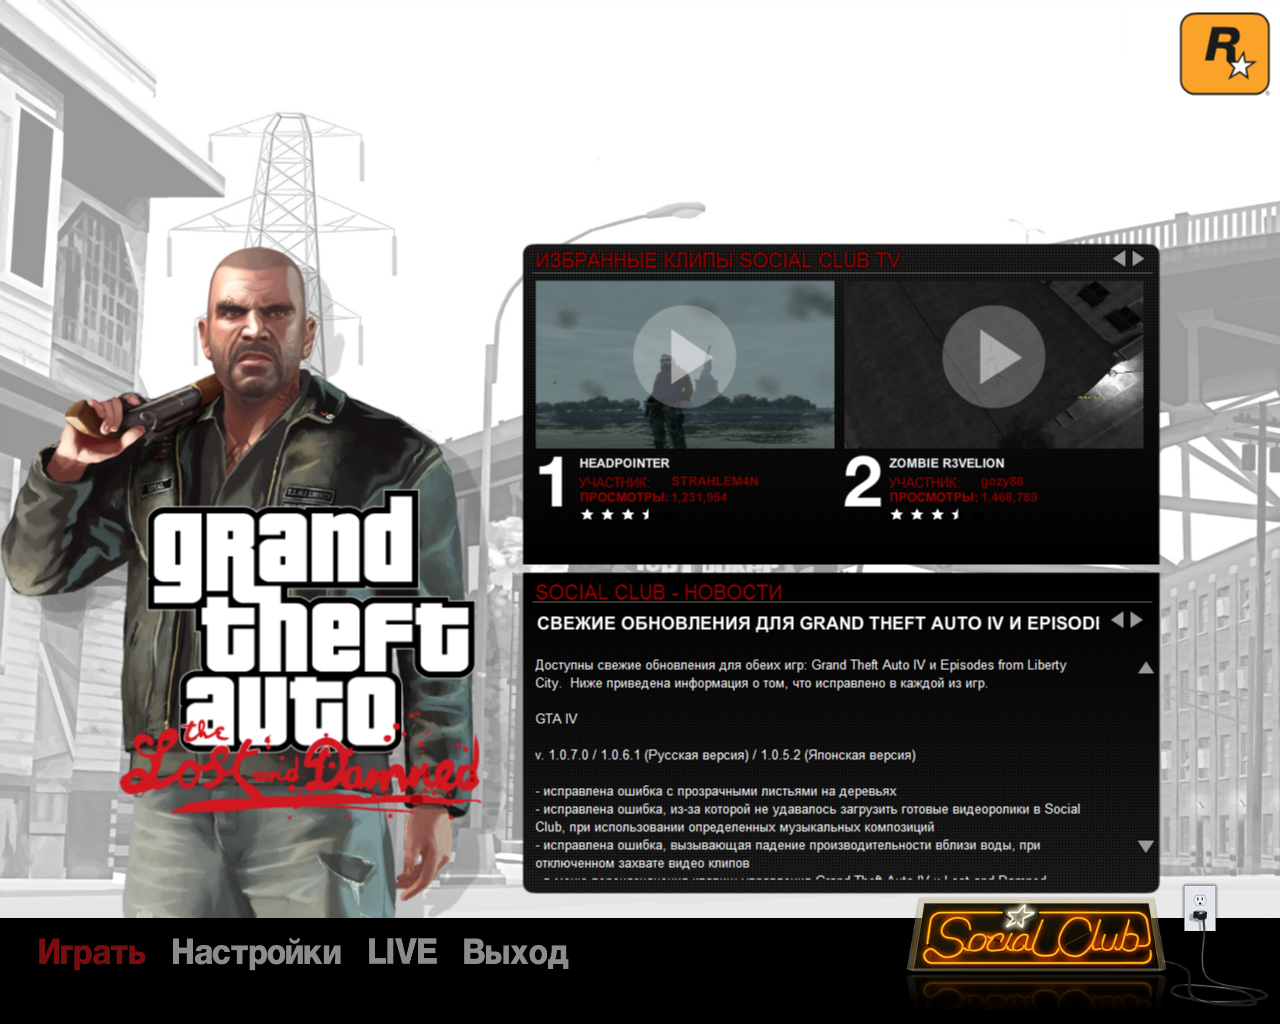 Grand Theft Auto: Episodes from Liberty City Windows The Lost and Damned - main menu (Russian version)